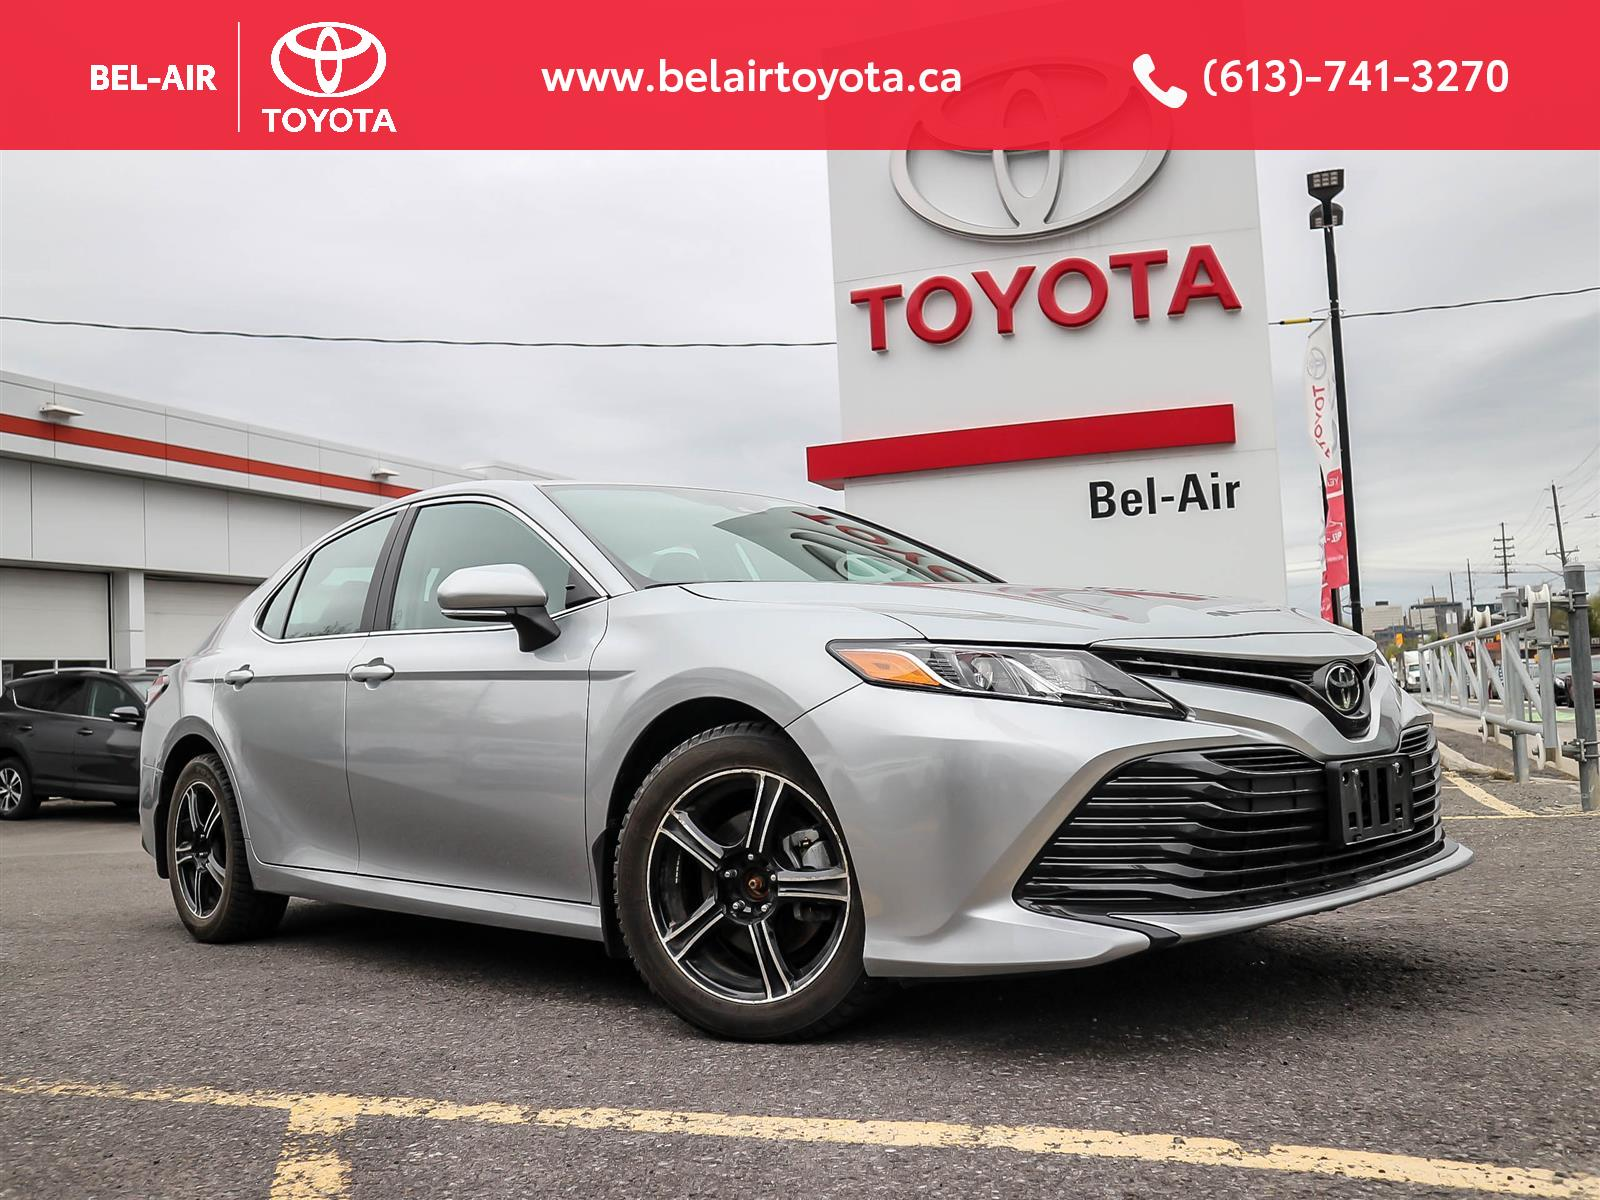 2020 Toyota Camry at Bel-Air Toyota